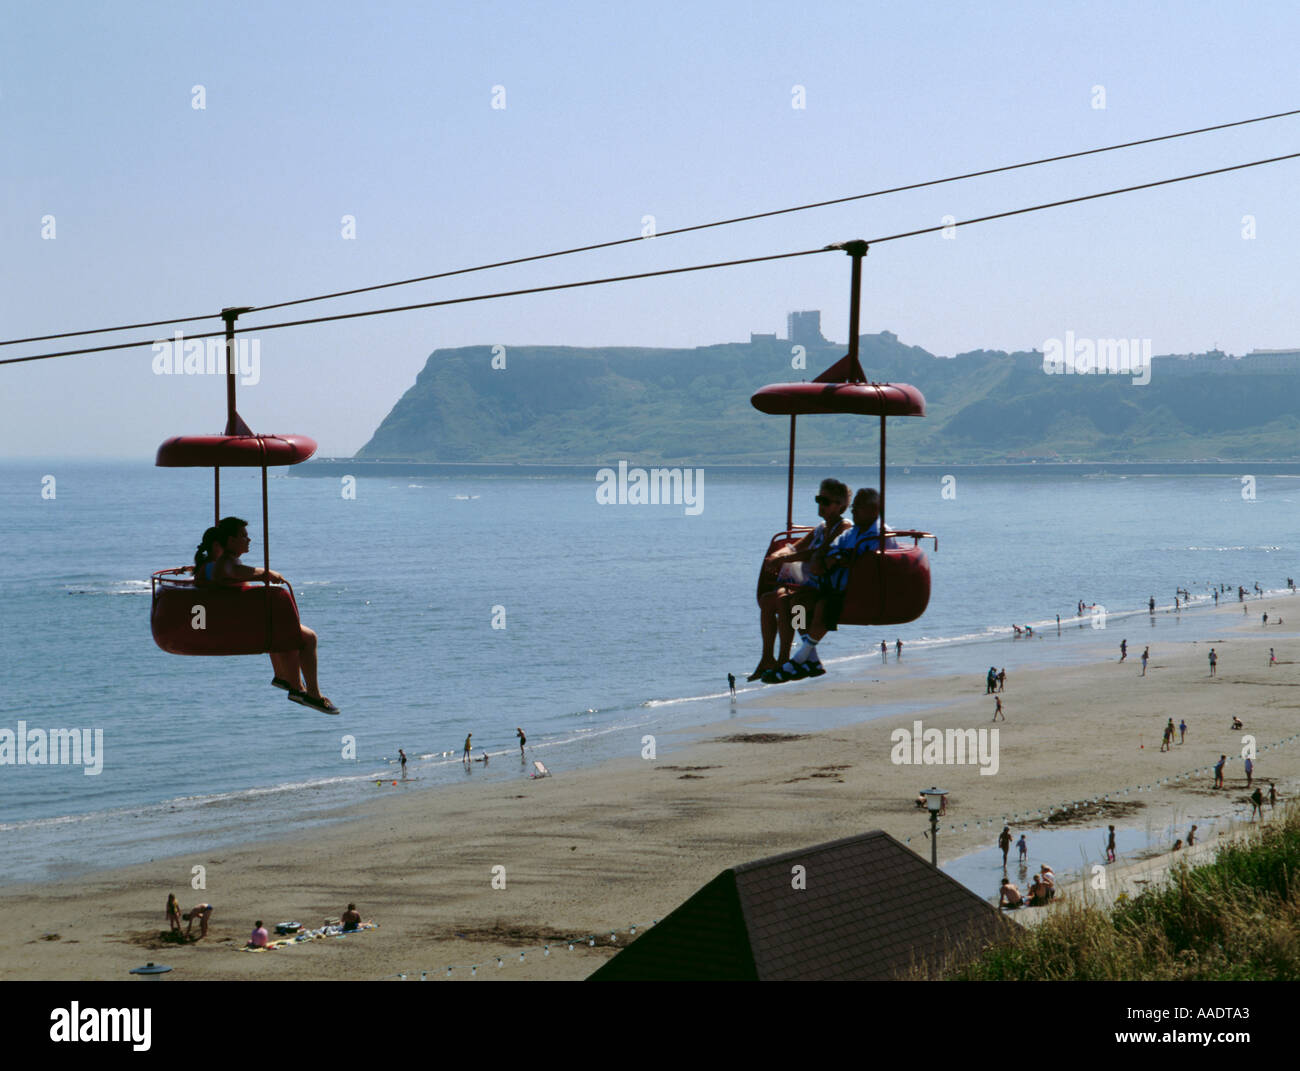 Cable Chair Lift : Cable chair lift north bay scarborough yorkshire